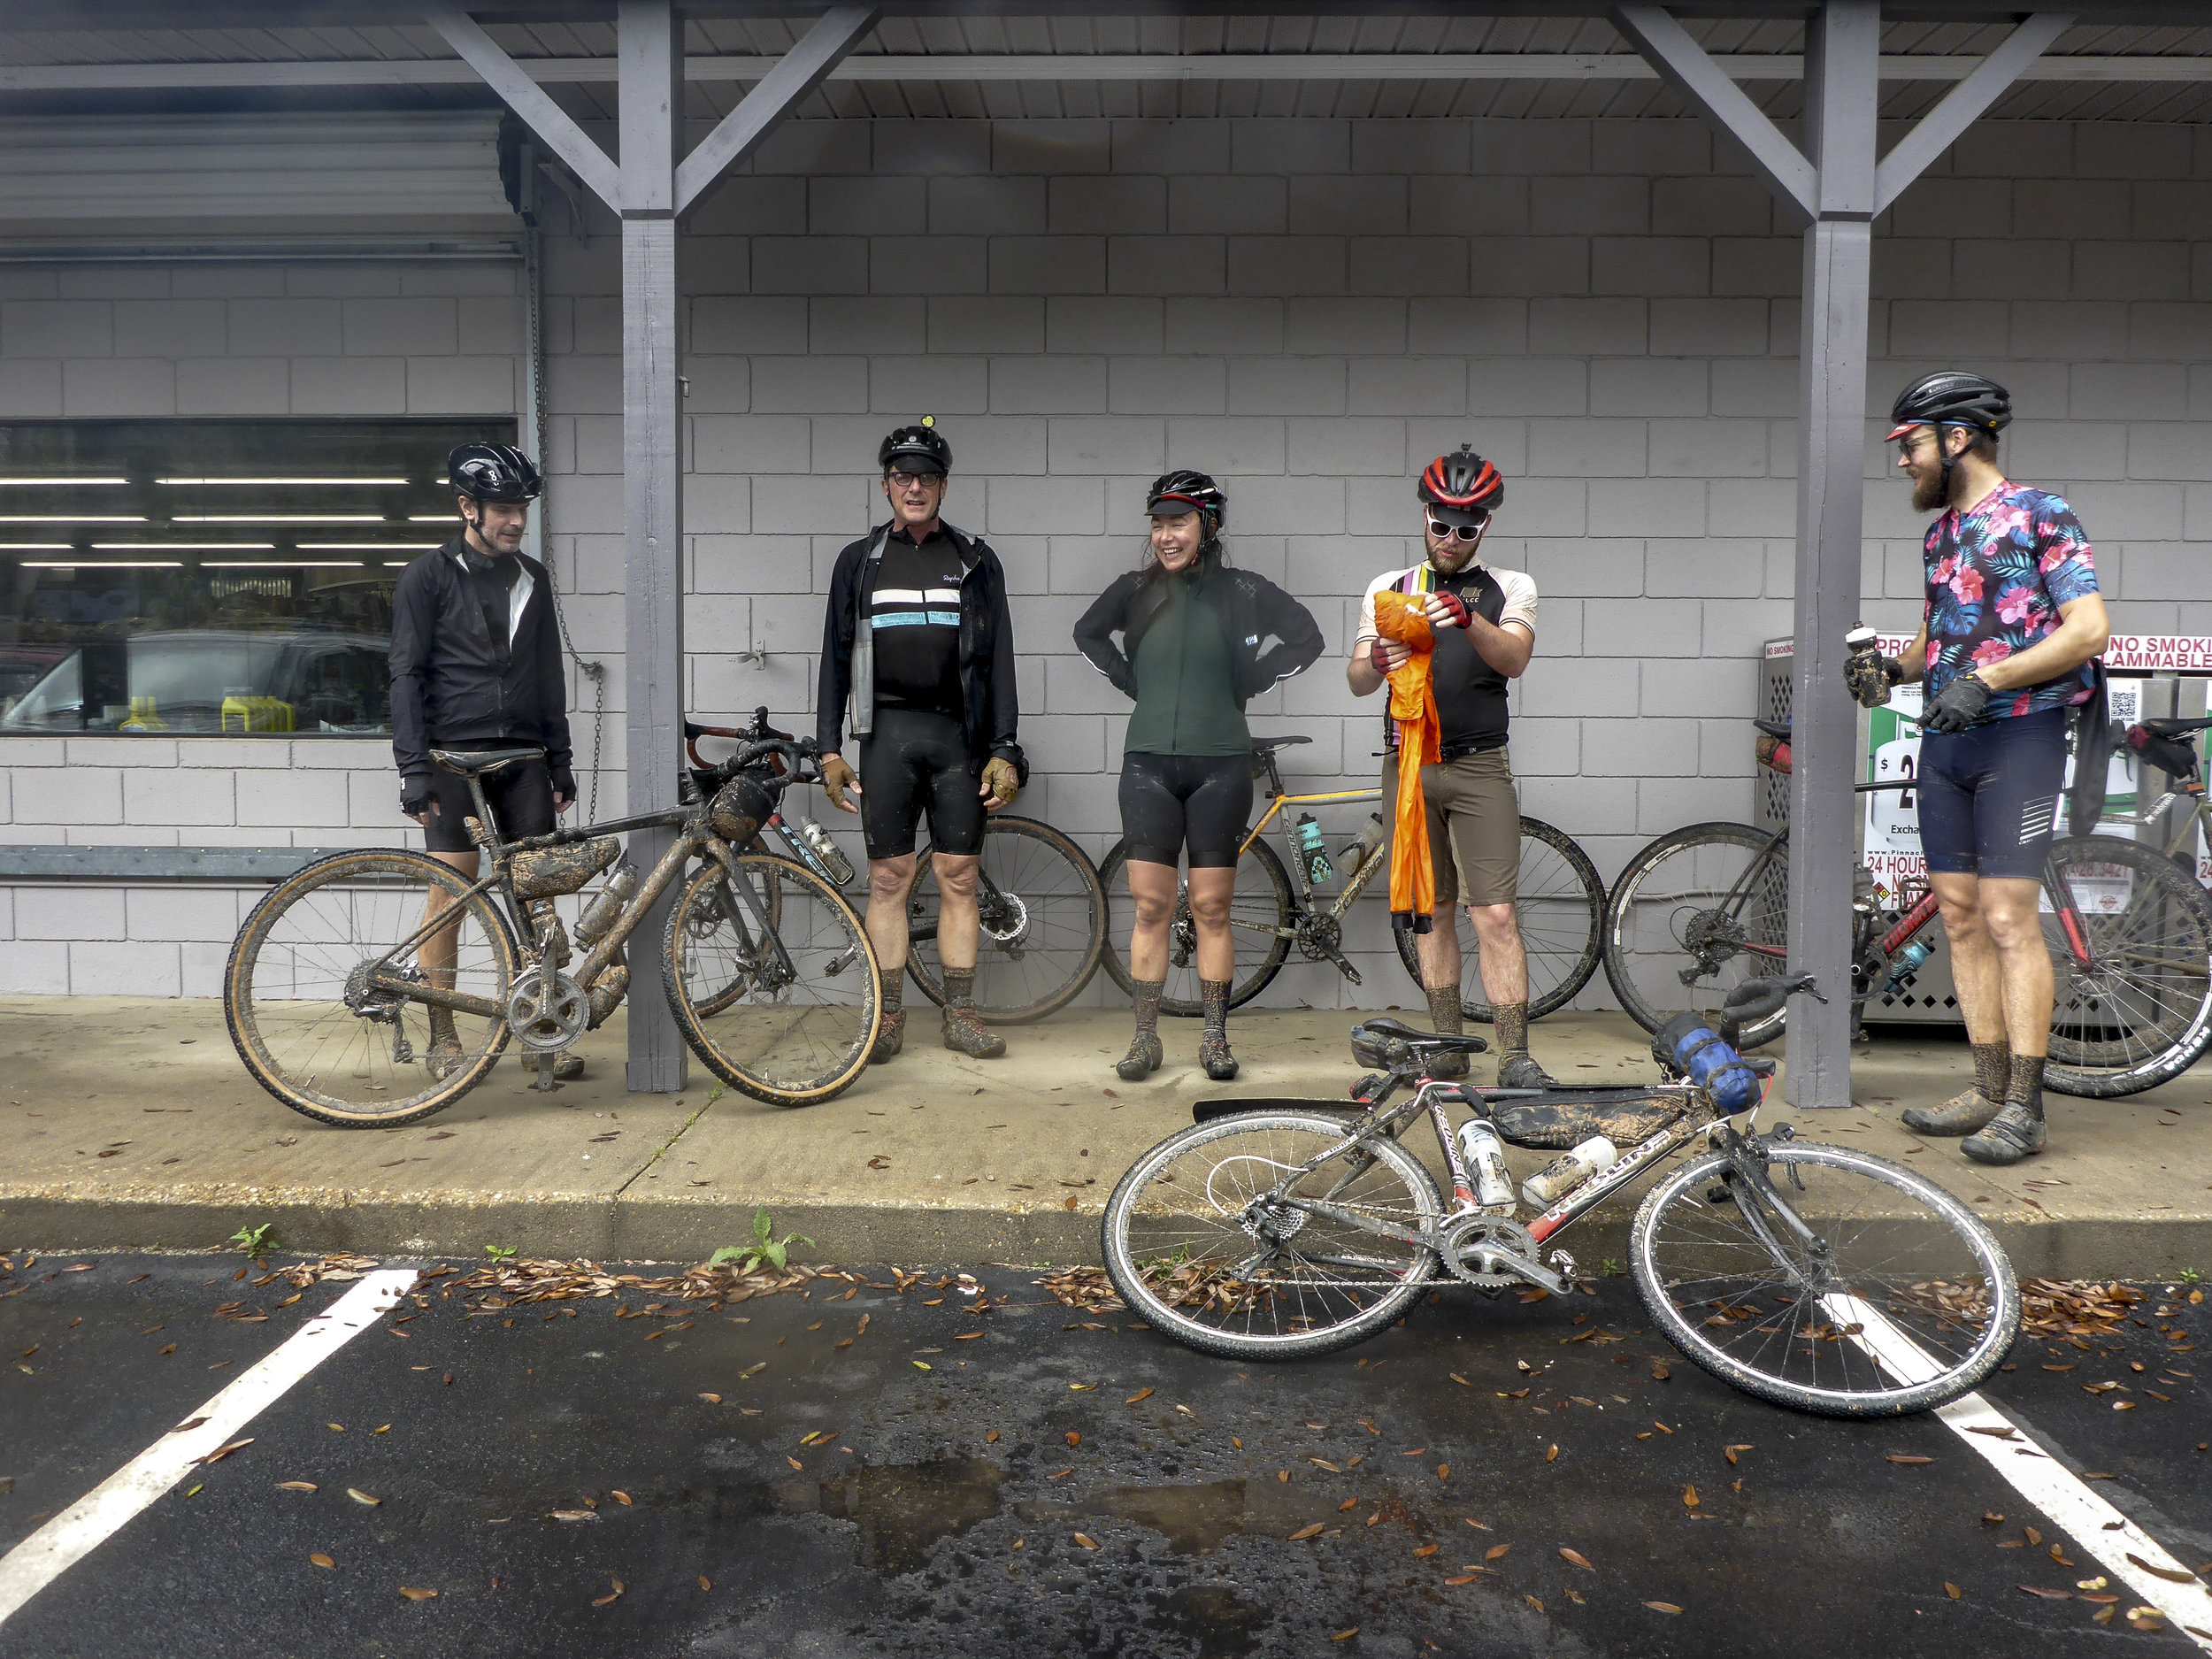 Gas station rain reprise  Pictured from left: John Christopher Matyjasik, Gerry Weber, Chanel Zeisel, Jacob Cronan and Gregory Zahl